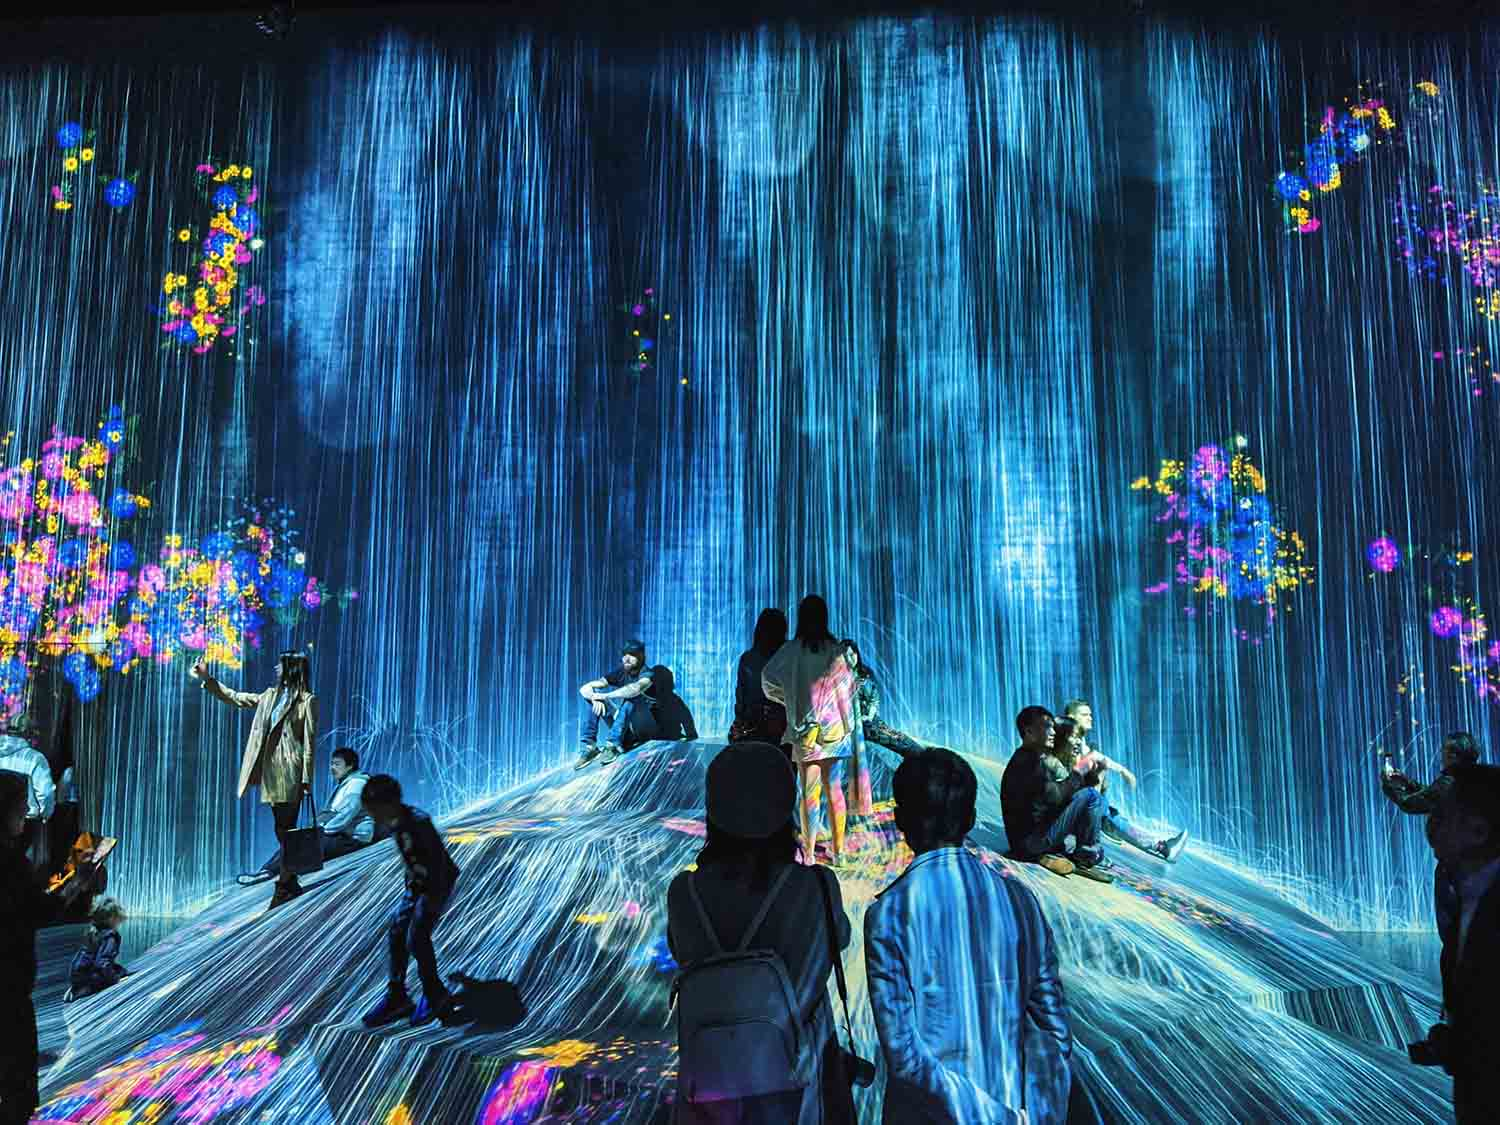 digital art showing people dancing on stage